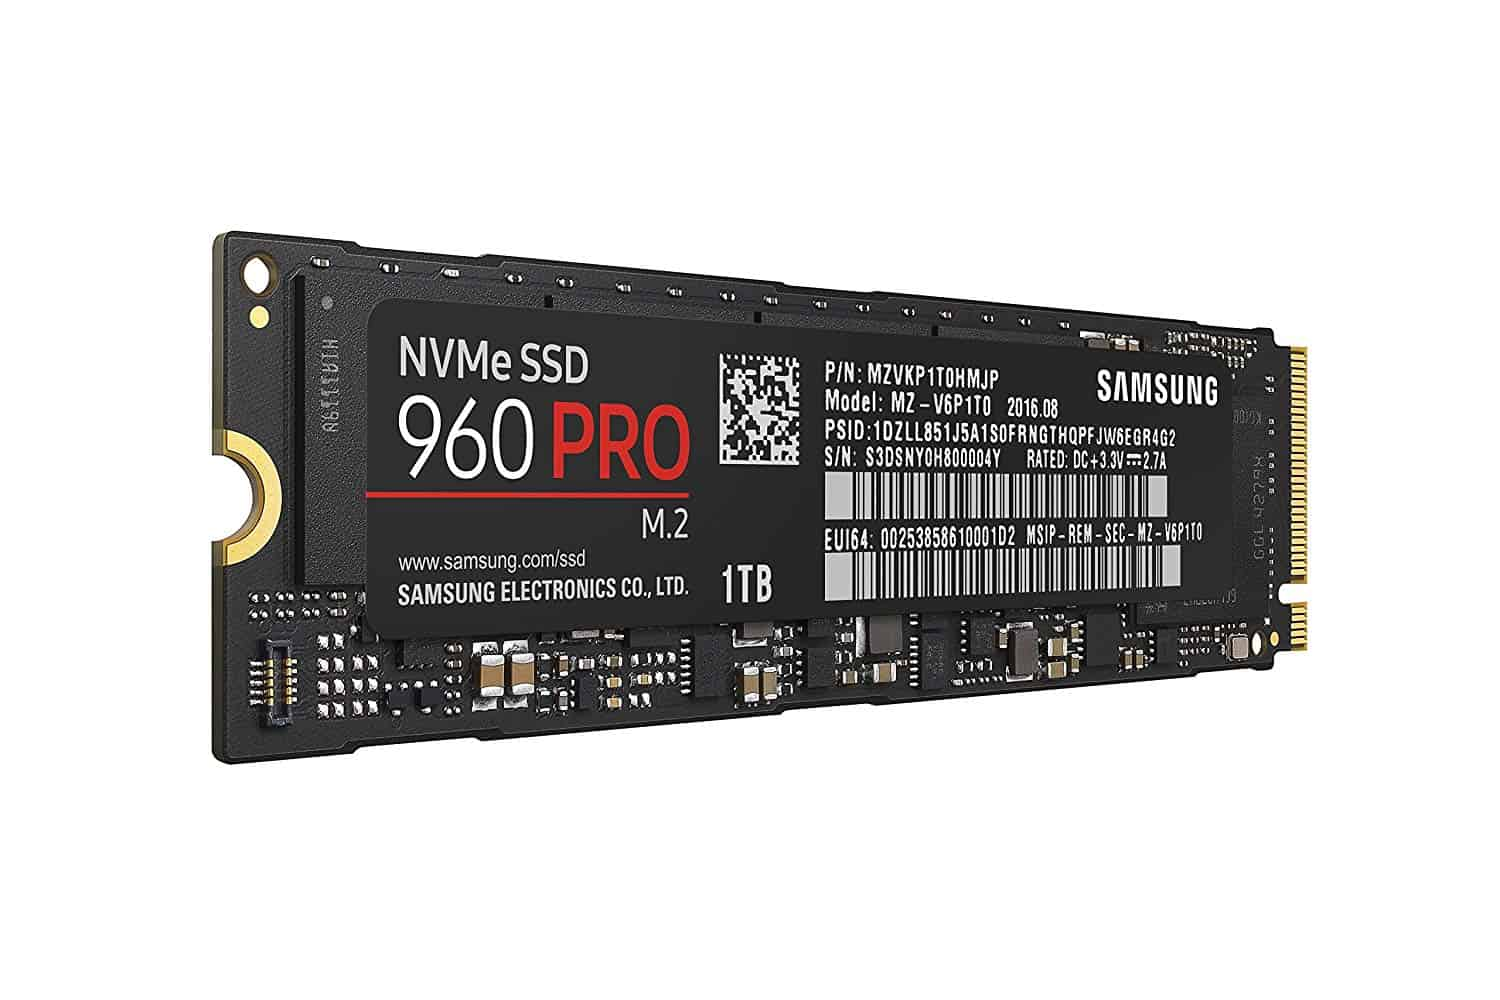 Best NVMe SSD for gaming 2019